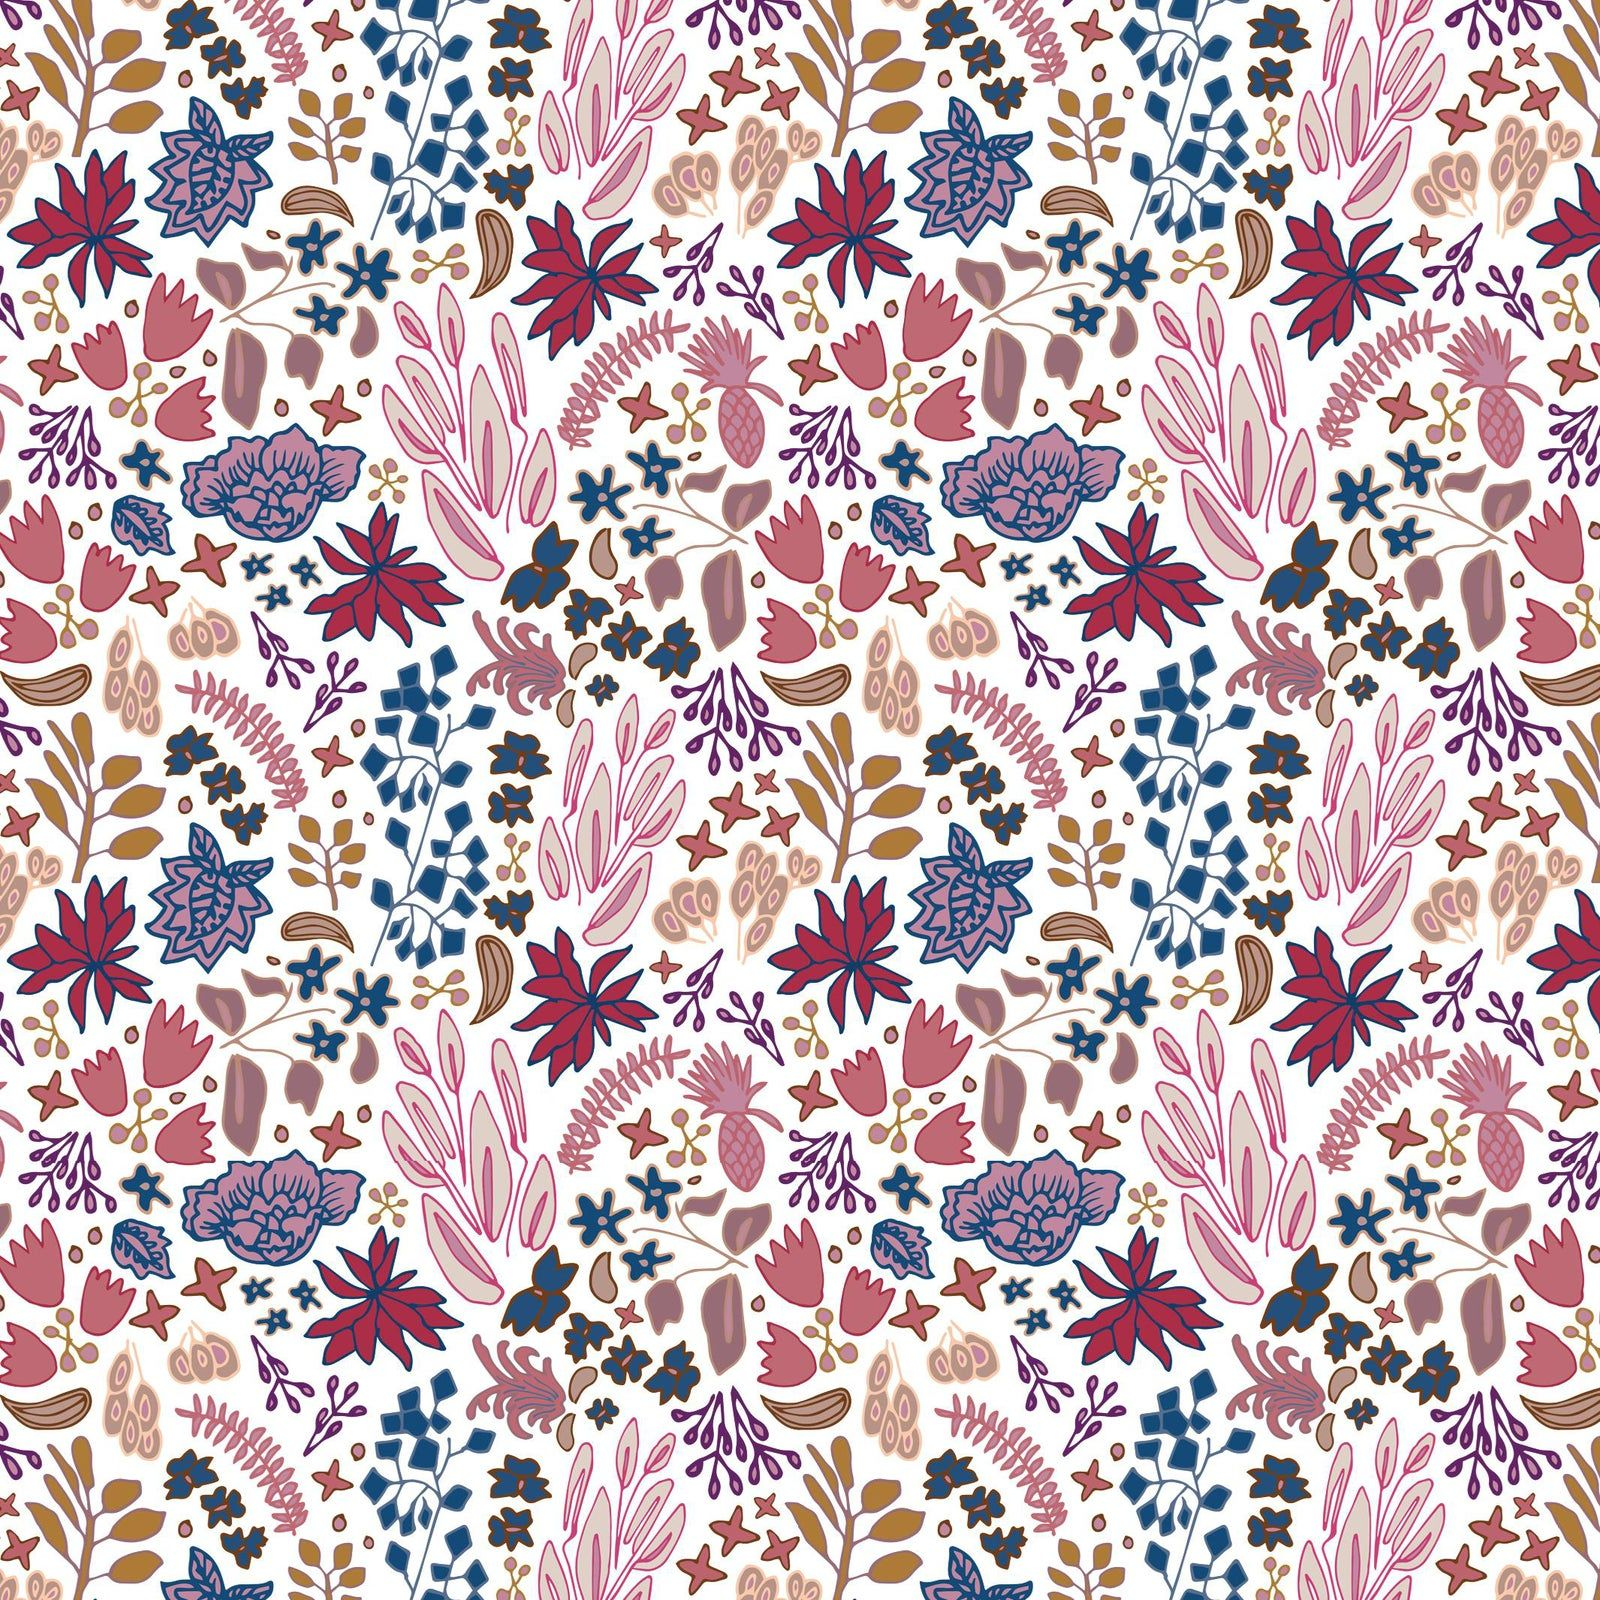 House of Harris Cambridge Wallpaper, 30 Yards, Jewel